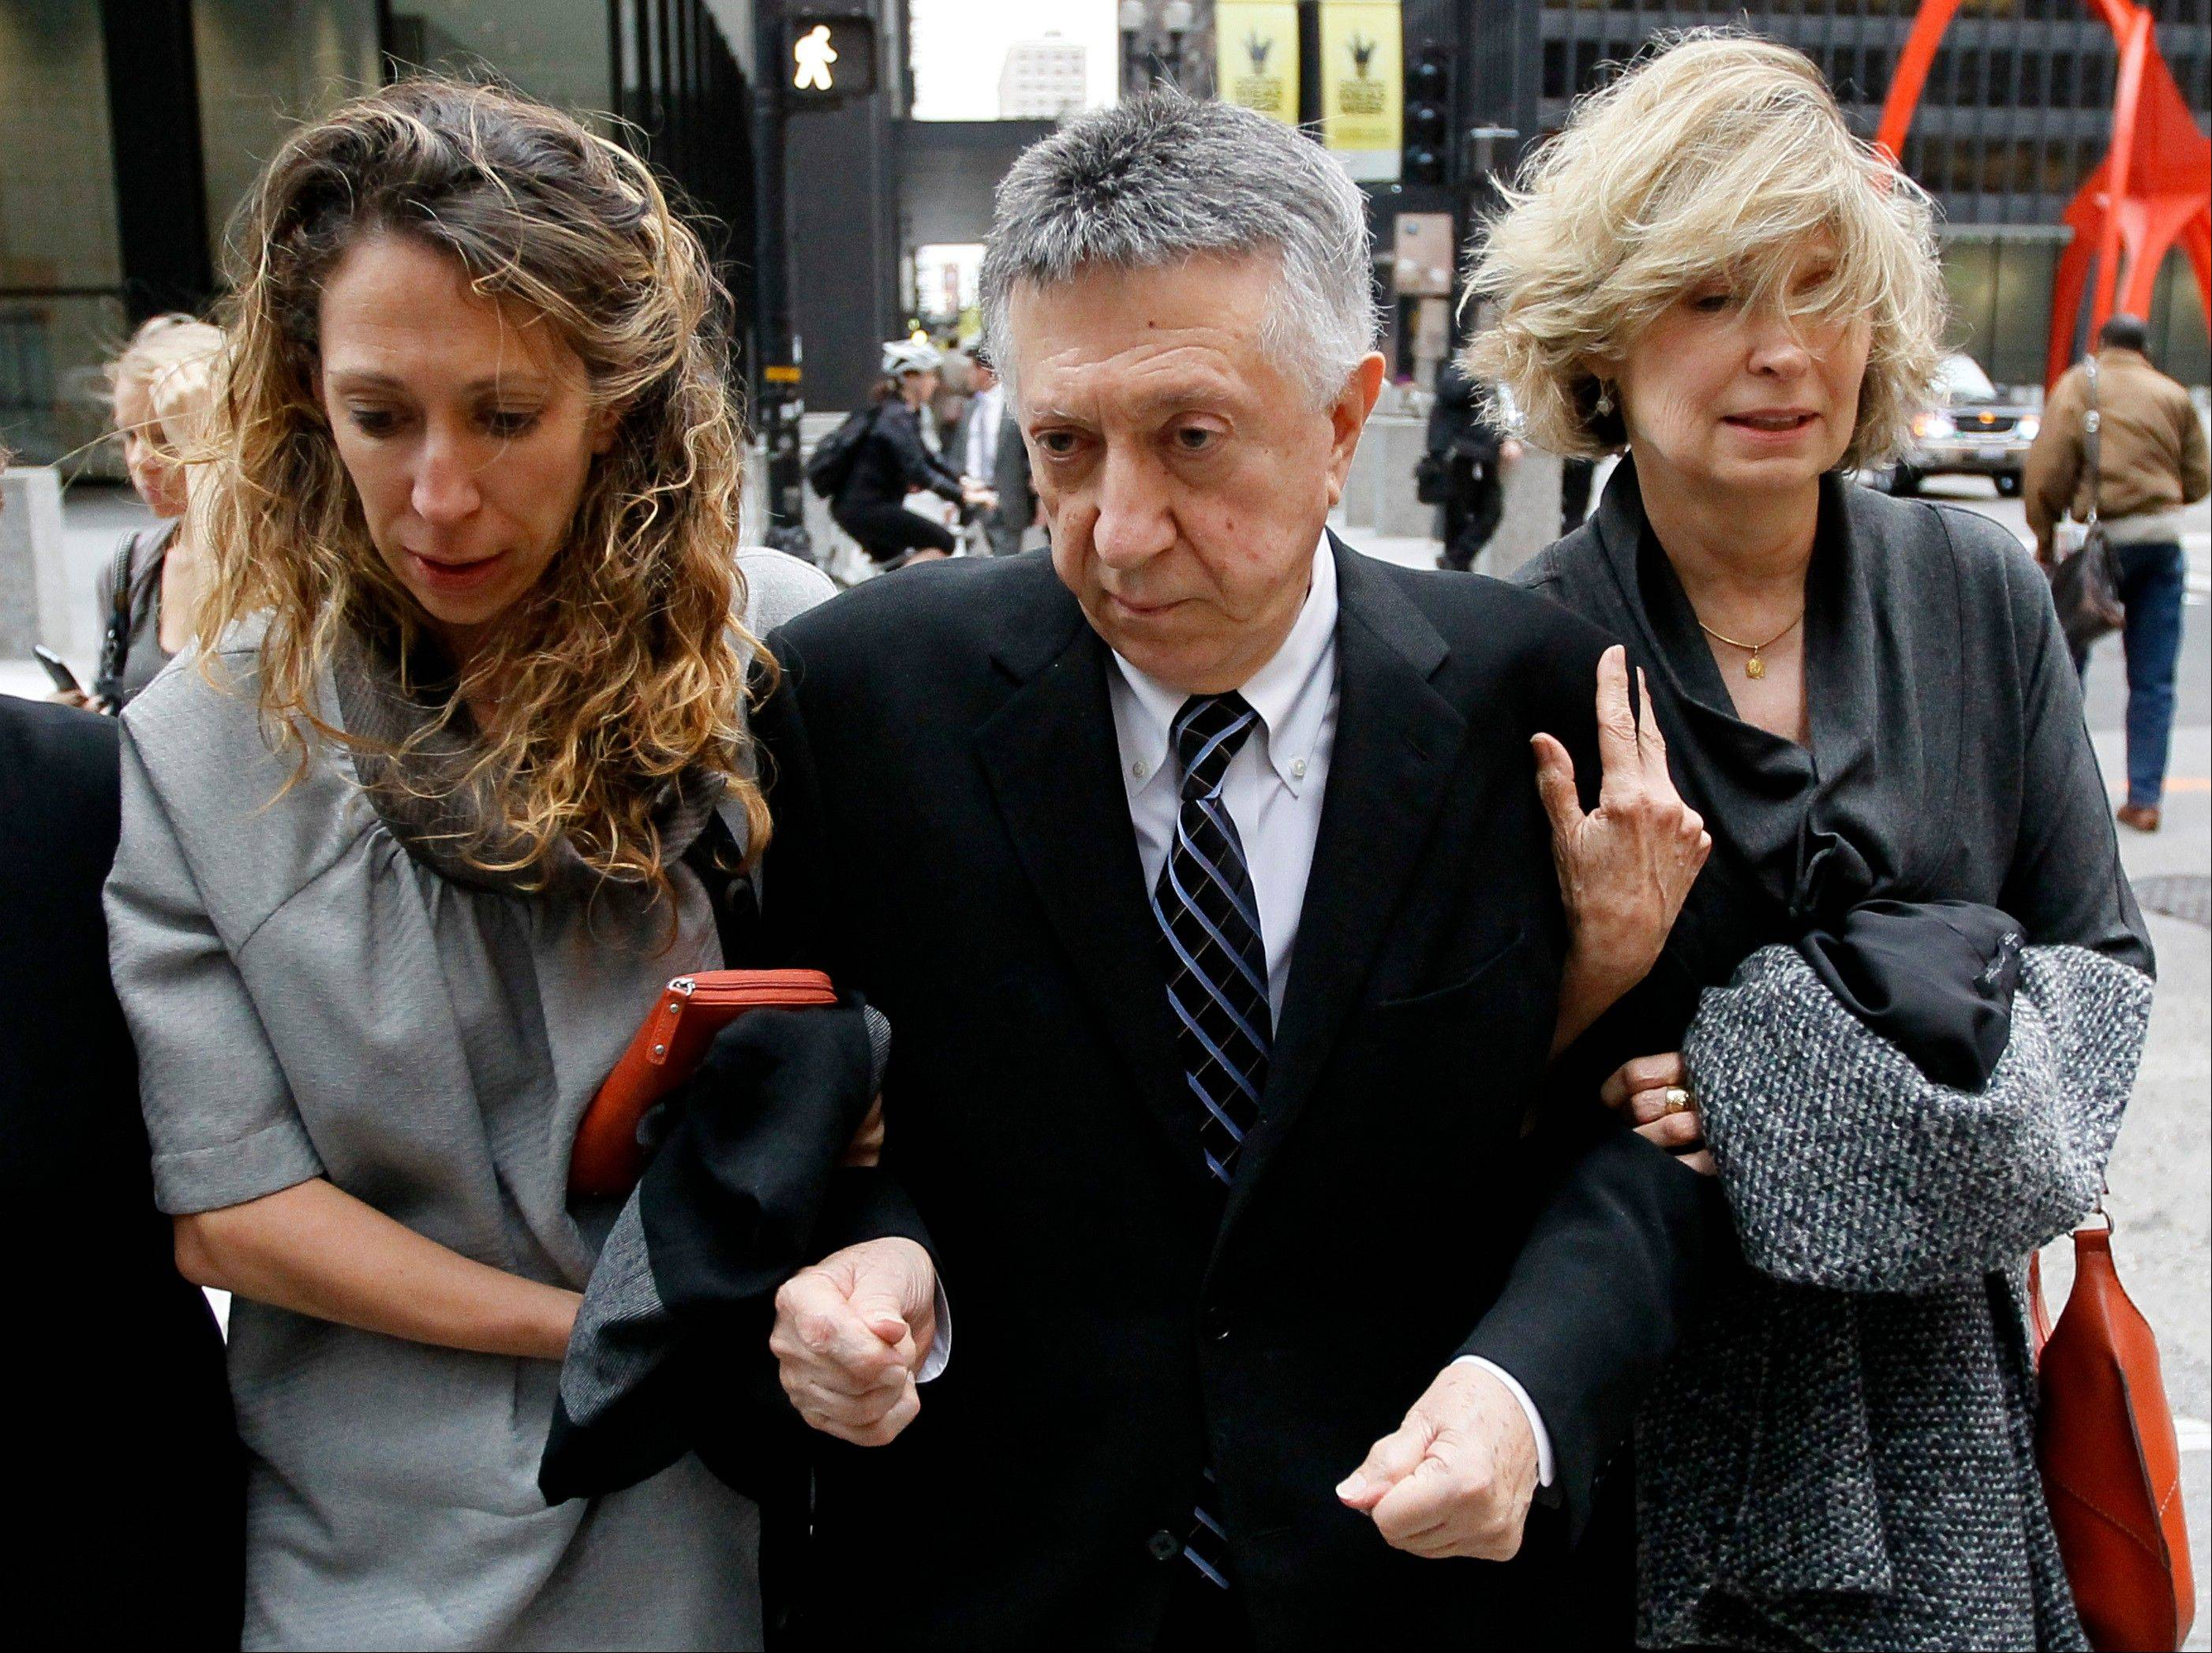 William Cellini, center, leaves the federal courthouse with unidentified family members after Judge James Zagel sentenced him to 366 days in prison and a $75,000 fine Thursday in Chicago.